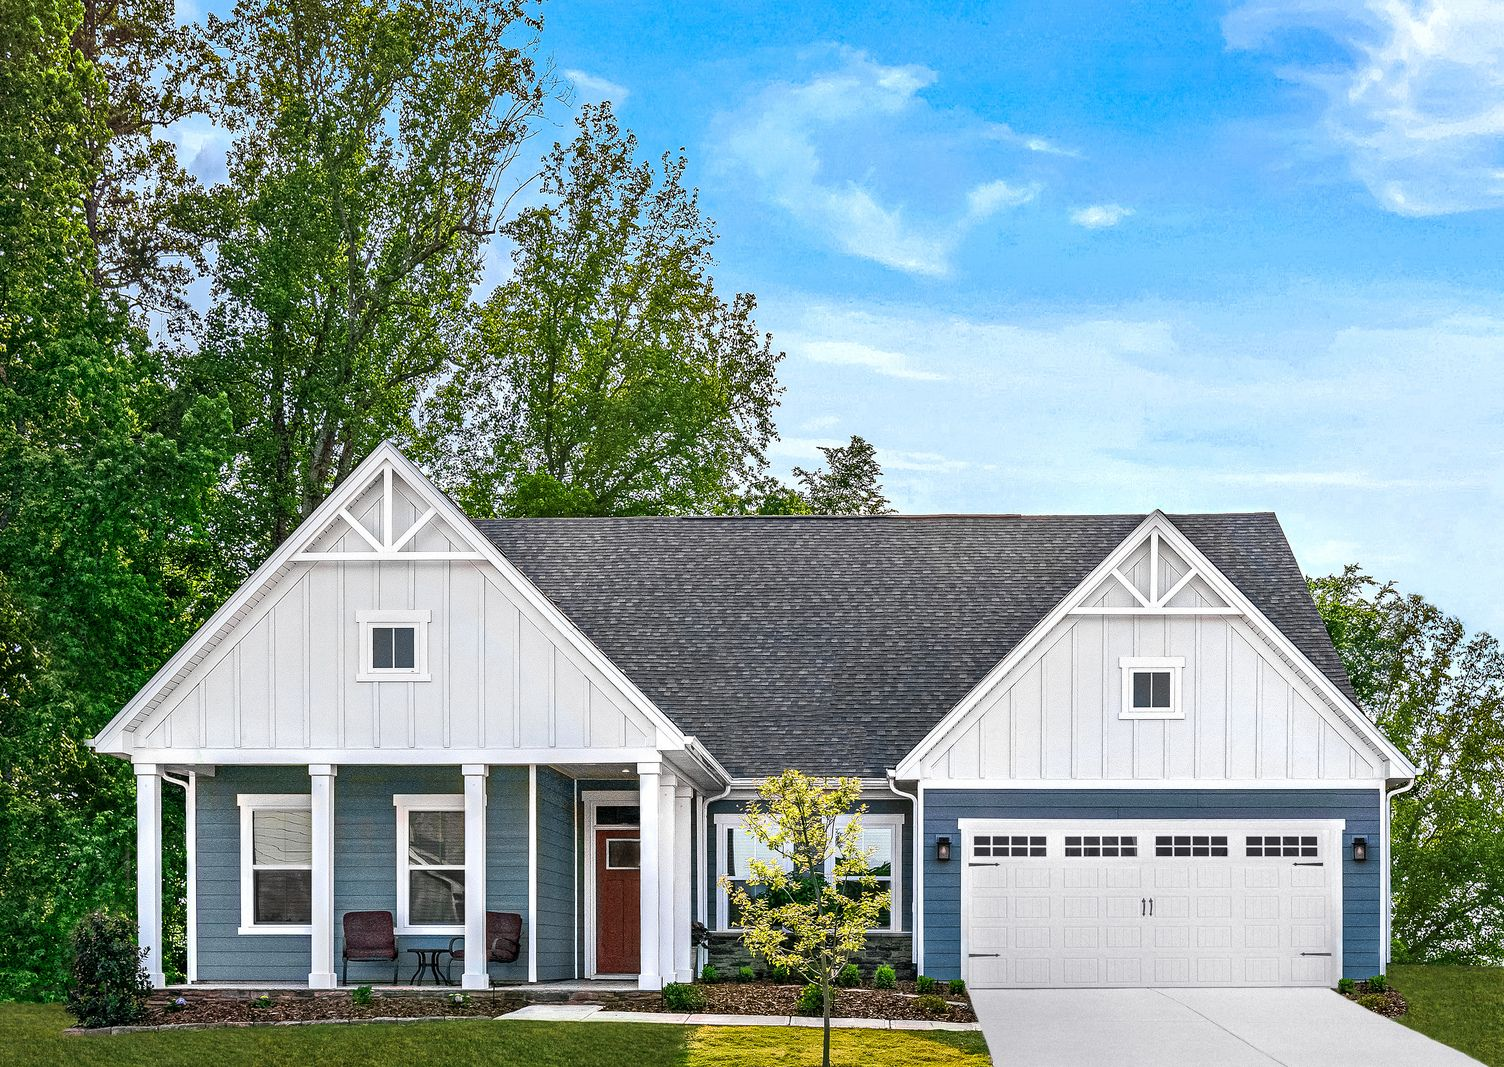 Welcome to Spring Breeze!:The most quiet, secluded new home community in the Lewes area. Beautiful curb appeal, sense of community and completed amenities, just minutes from Lewes Beach.Schedule an appointment today!